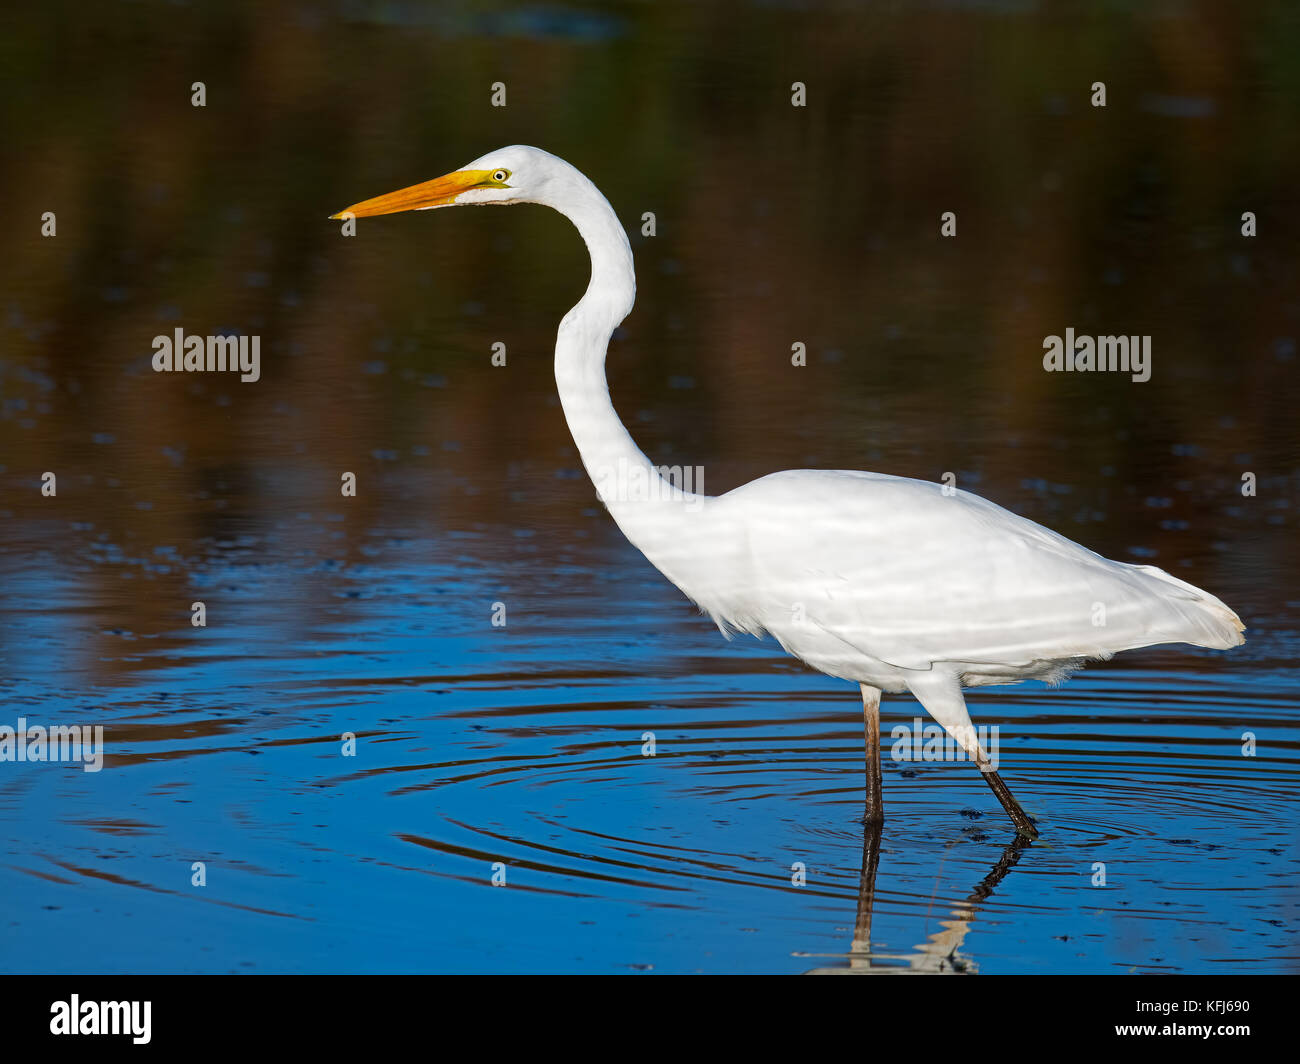 Great Egret - Stock Image